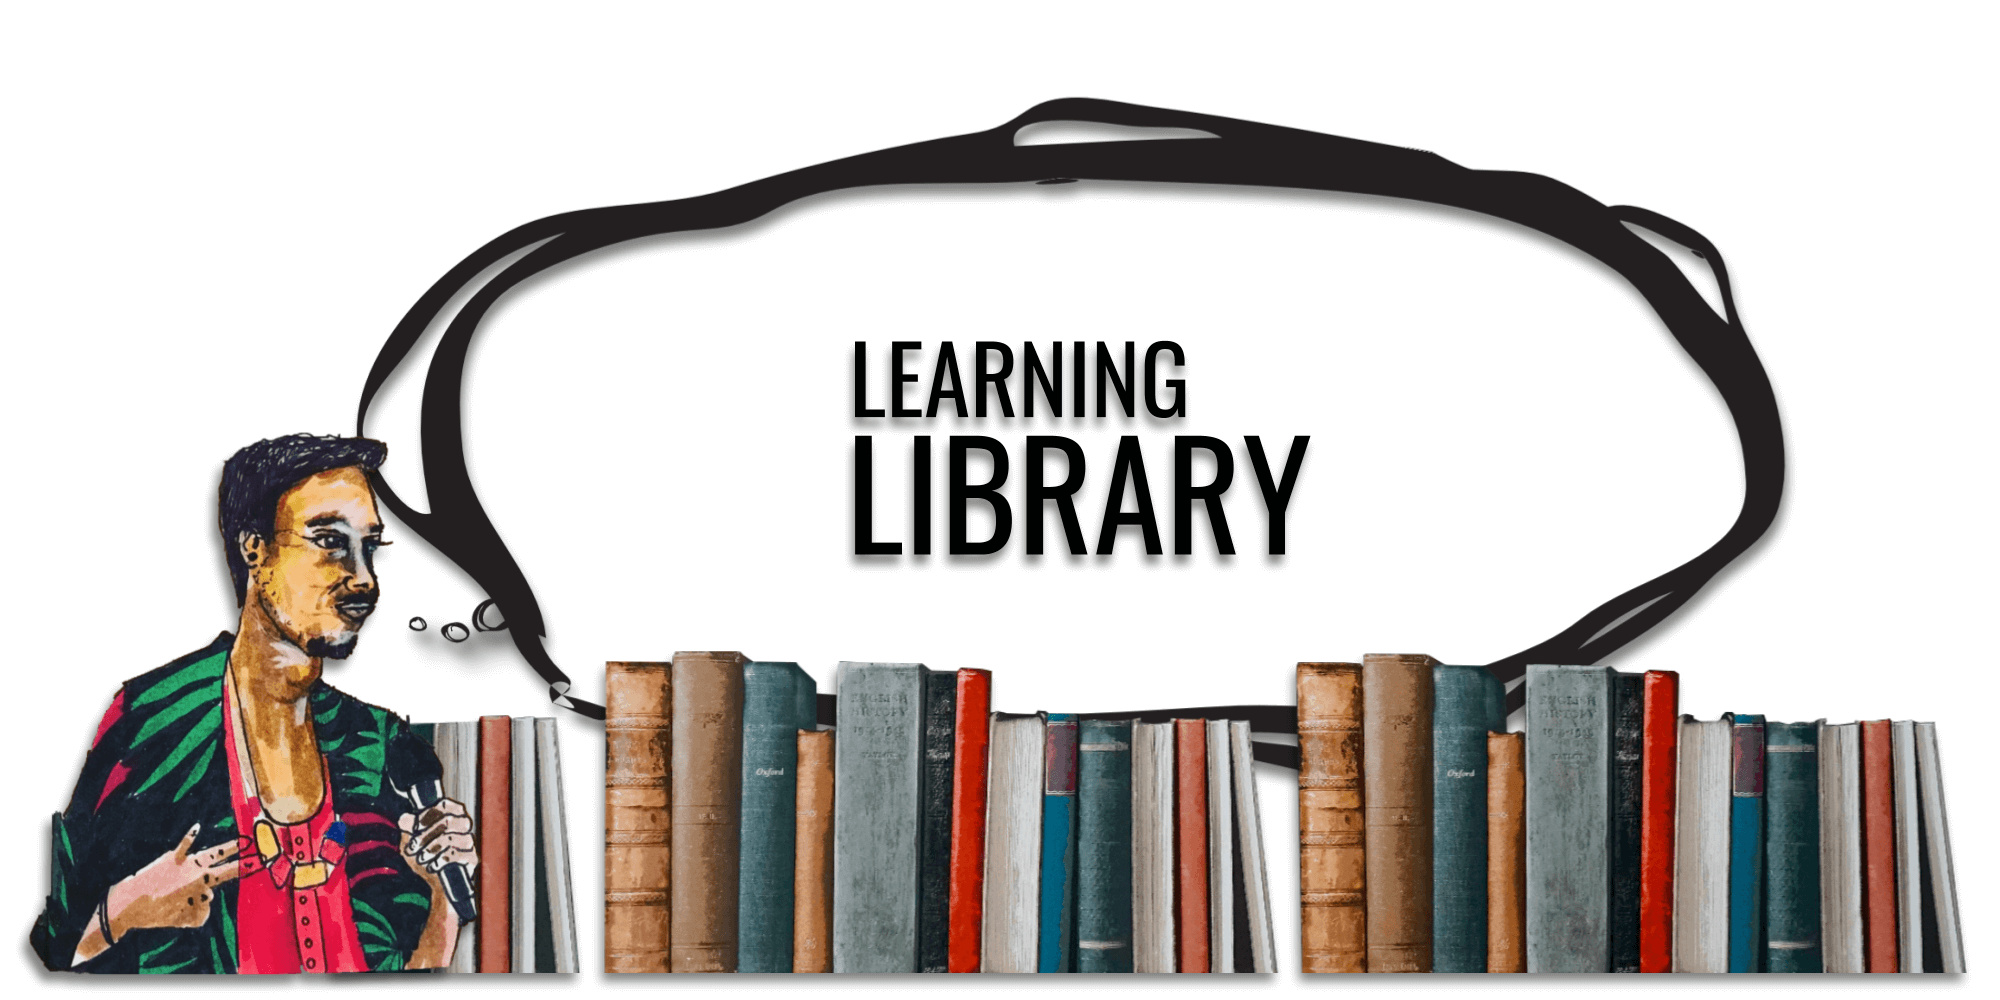 learning-library-landing-title-late-nite-art.png